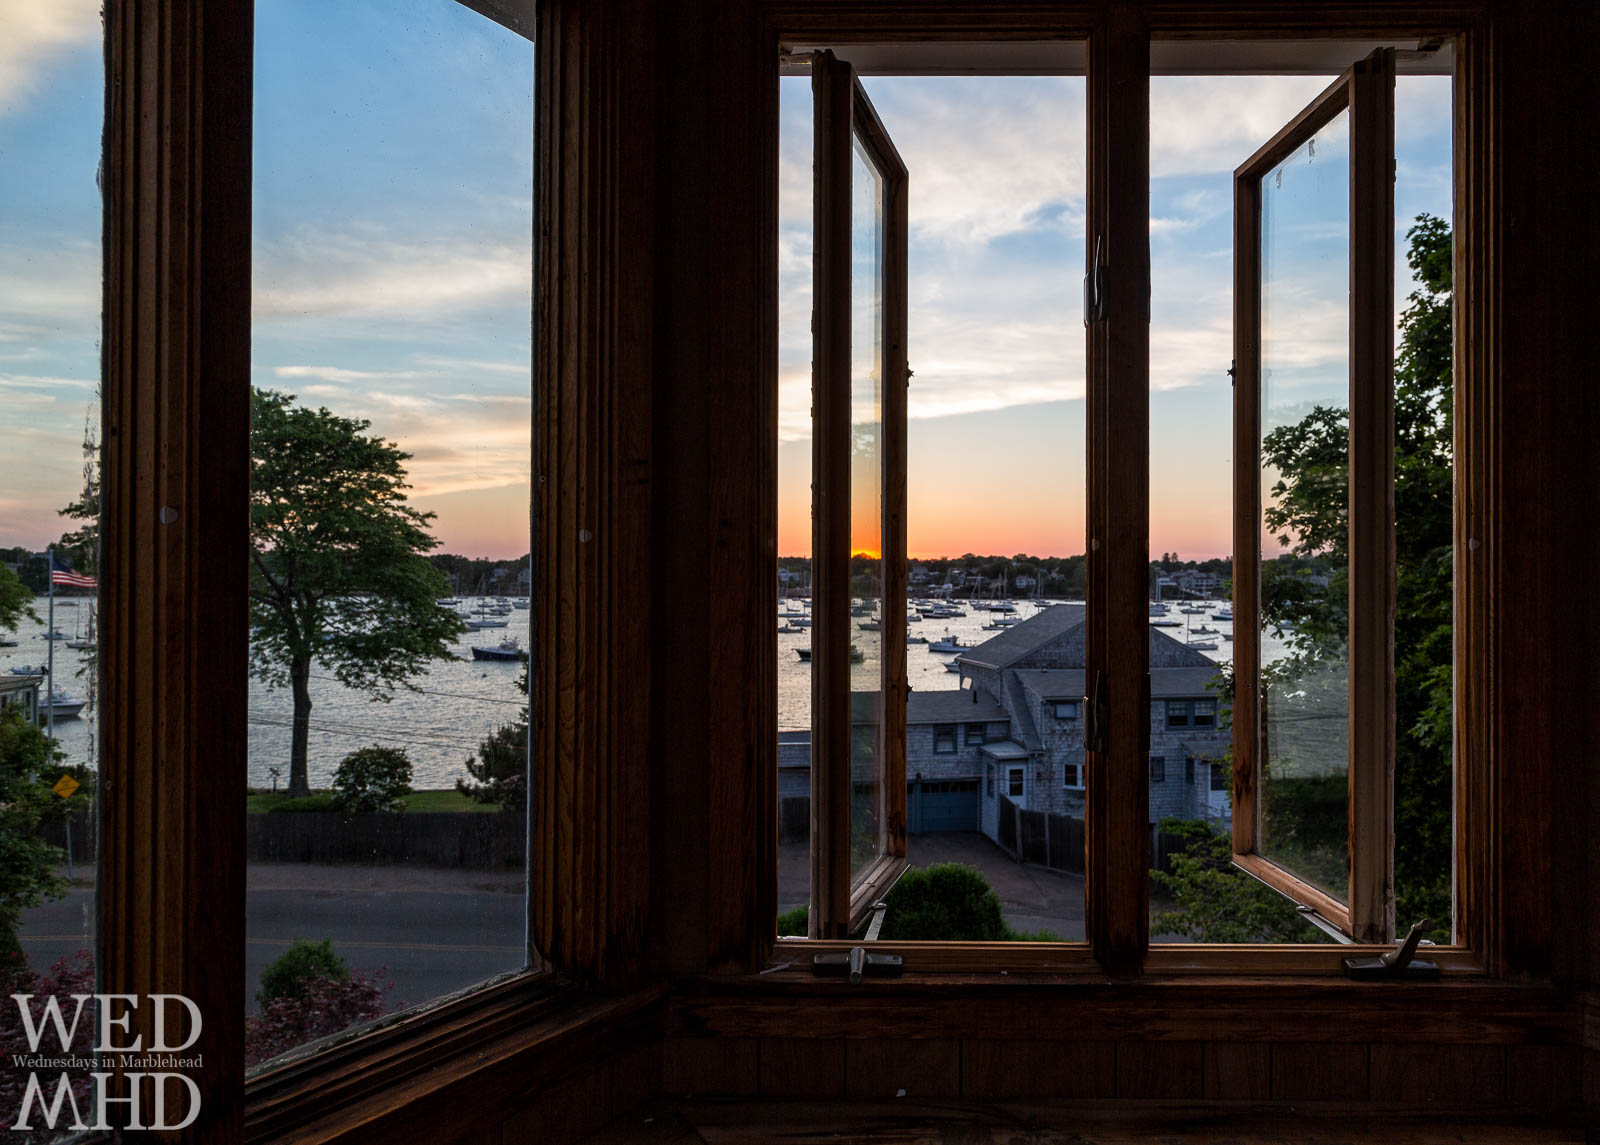 A commissioned Marblehead house portrait captures the timeless view out the windows of a cupola on Harbor Avenue